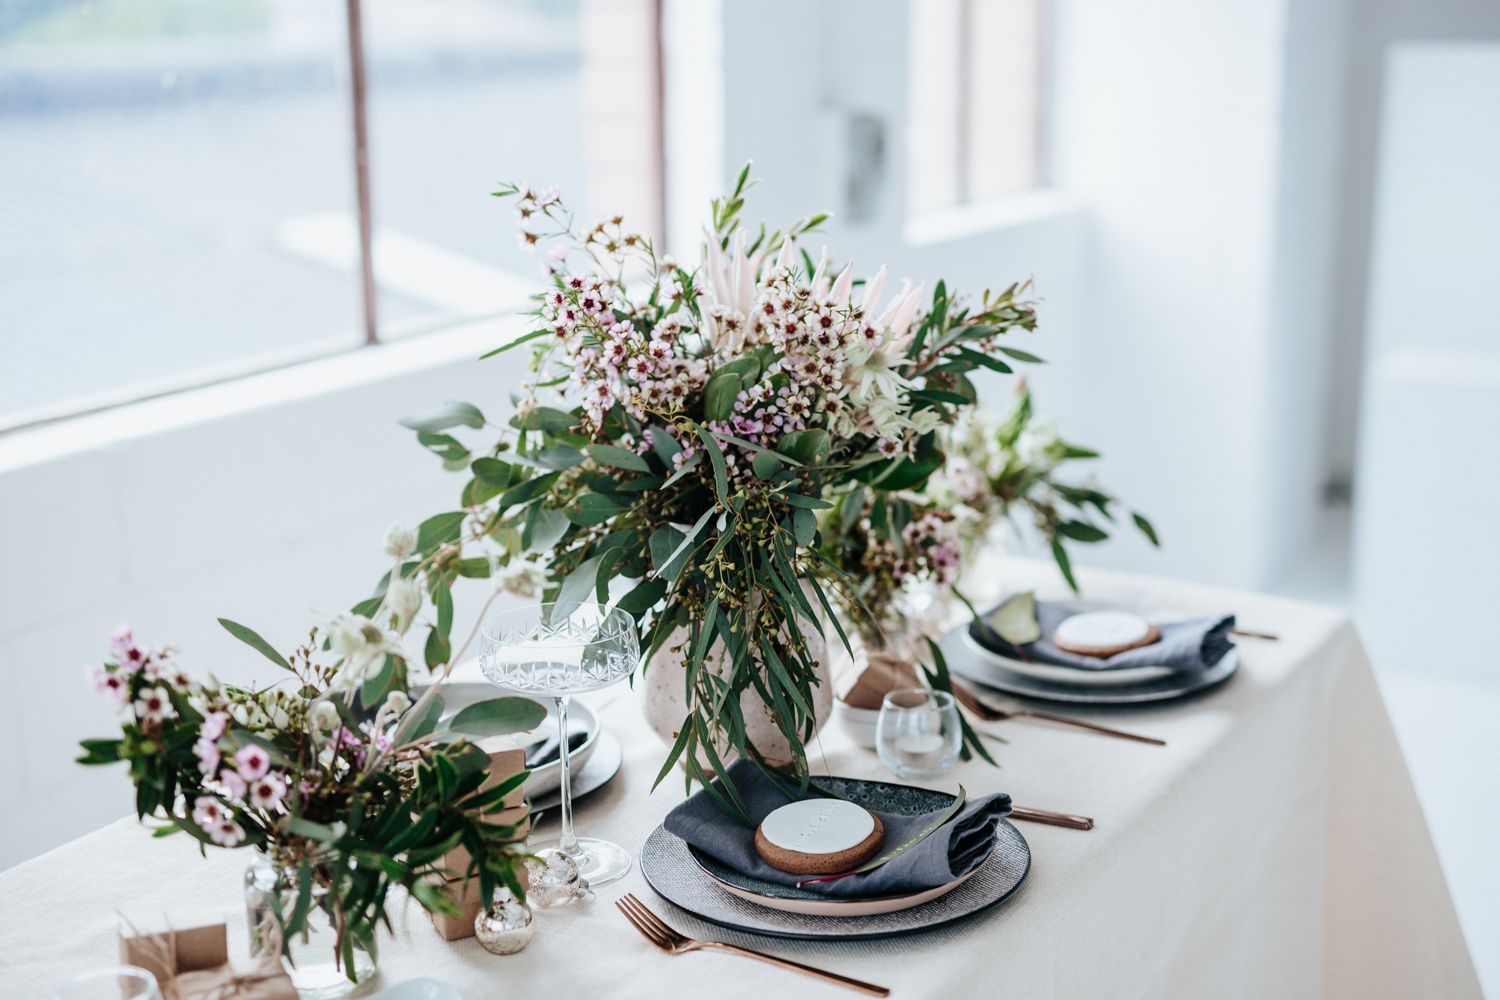 Australian Themed Christmas Table Styling And Decor Ideas Using Native And Natural Floral Australian Christmas Christmas Decorations Australian Christmas Table